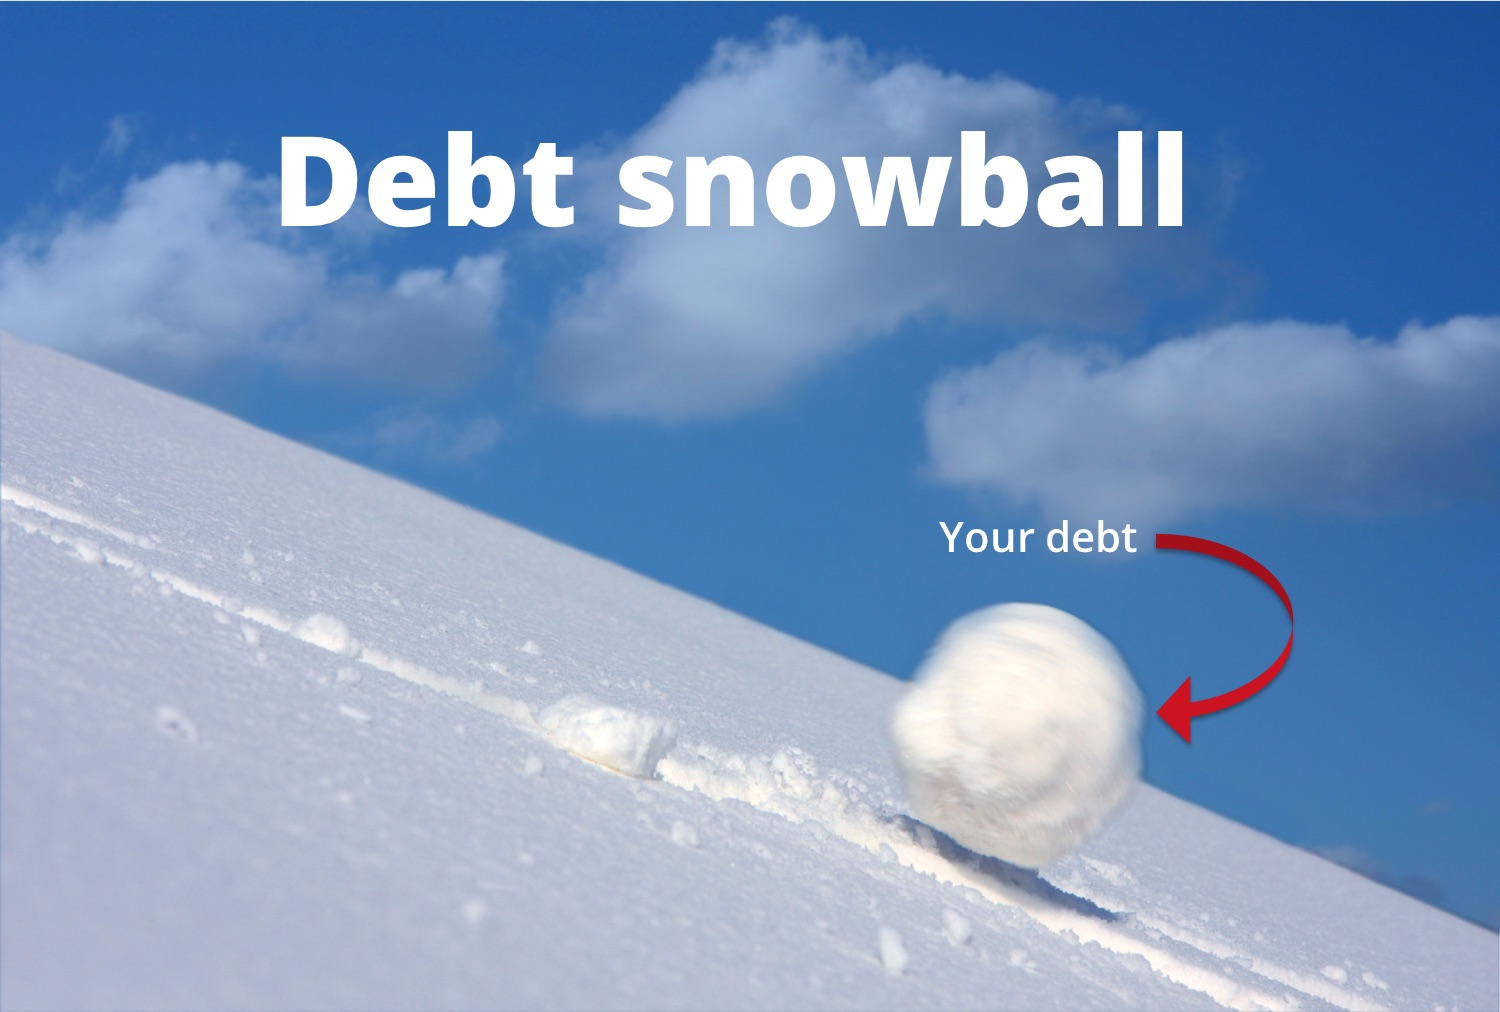 debt snowball method explained